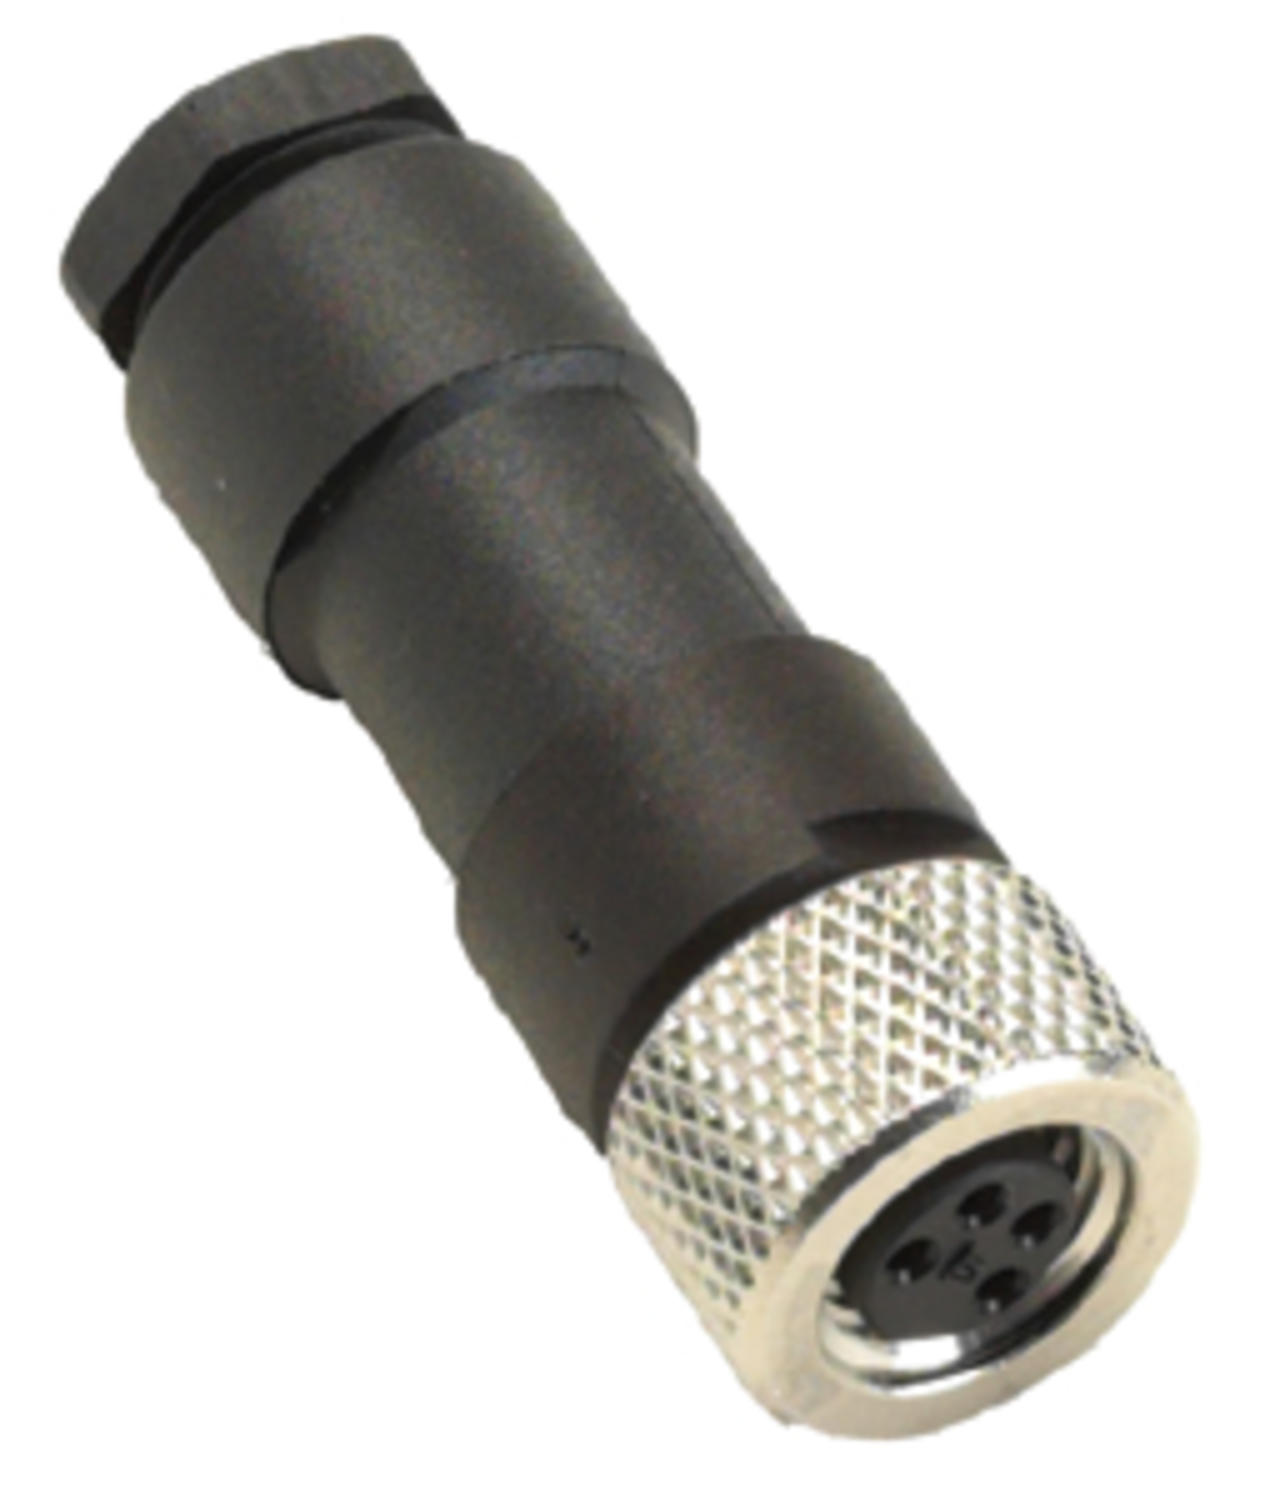 M8 field wireable connector female